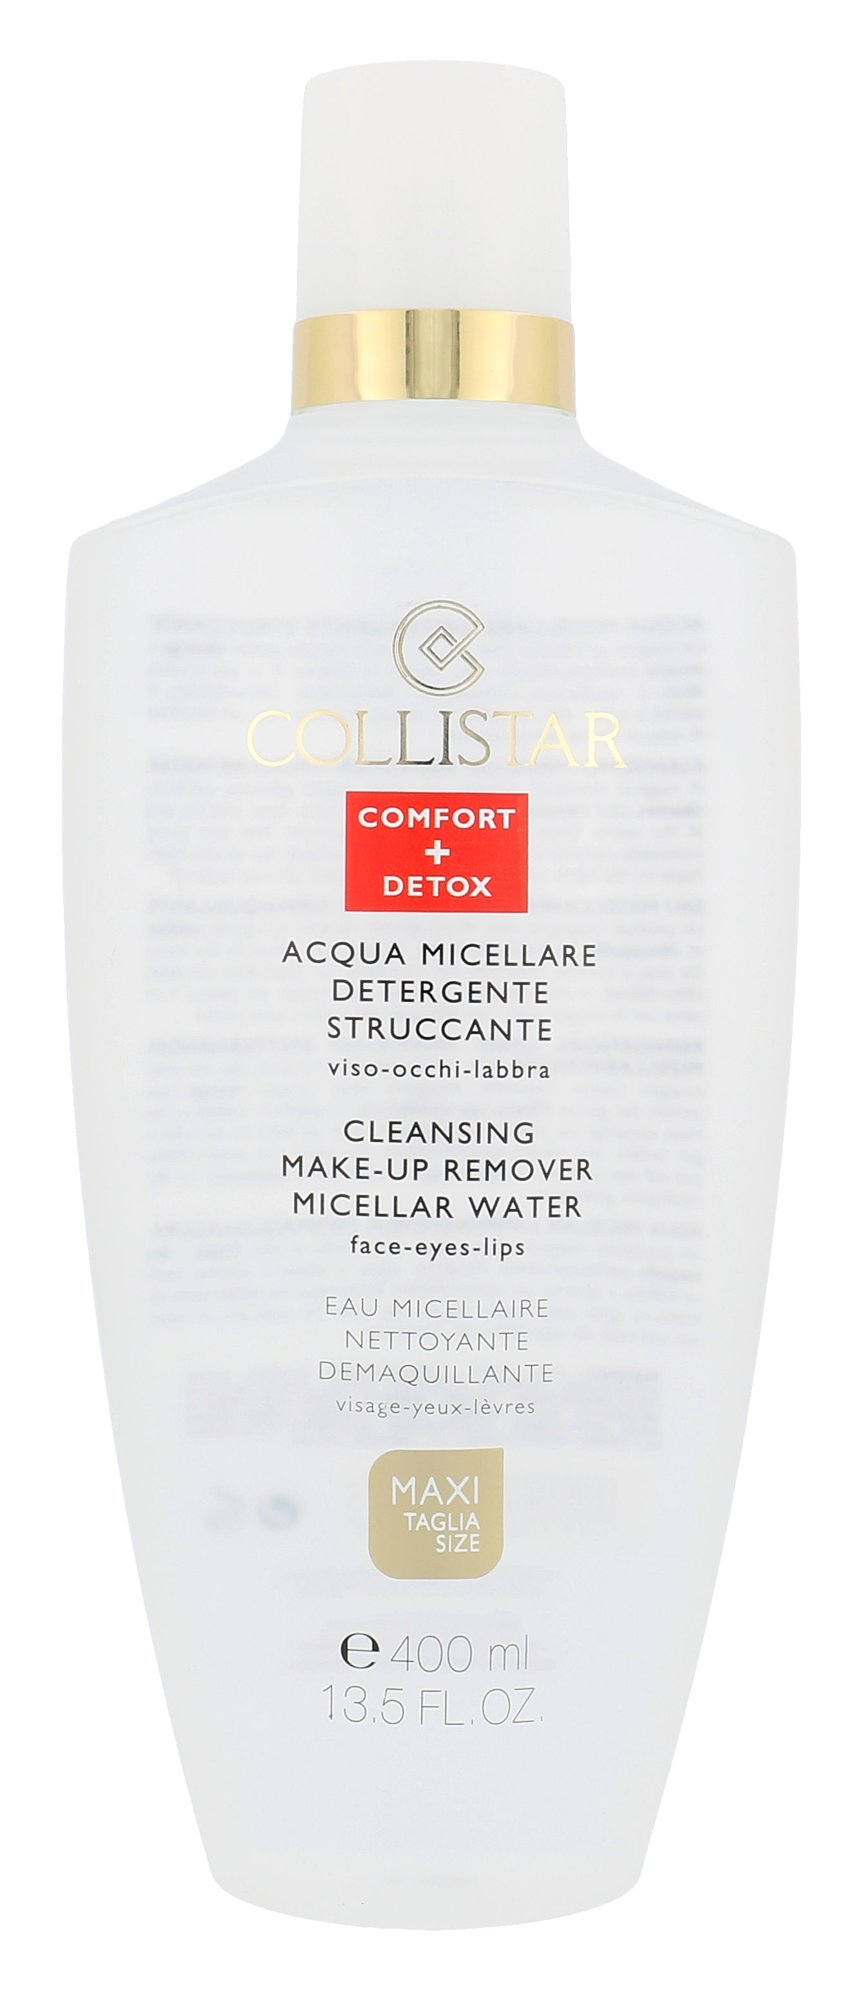 Collistar Micellar Water Cleansing Make-up Remover Cosmetic 400ml